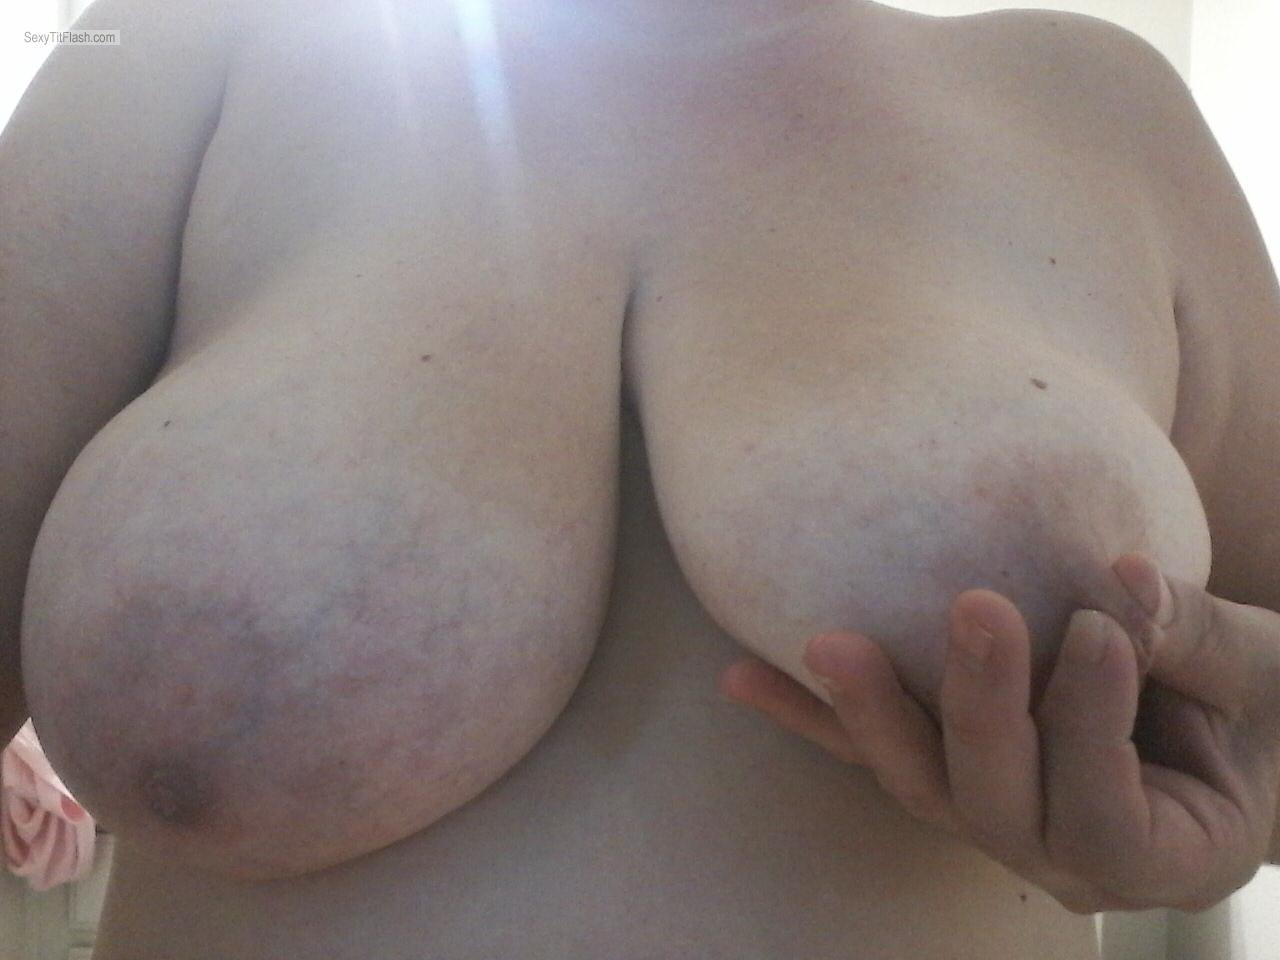 My Big Tits Selfie by Shysexydd